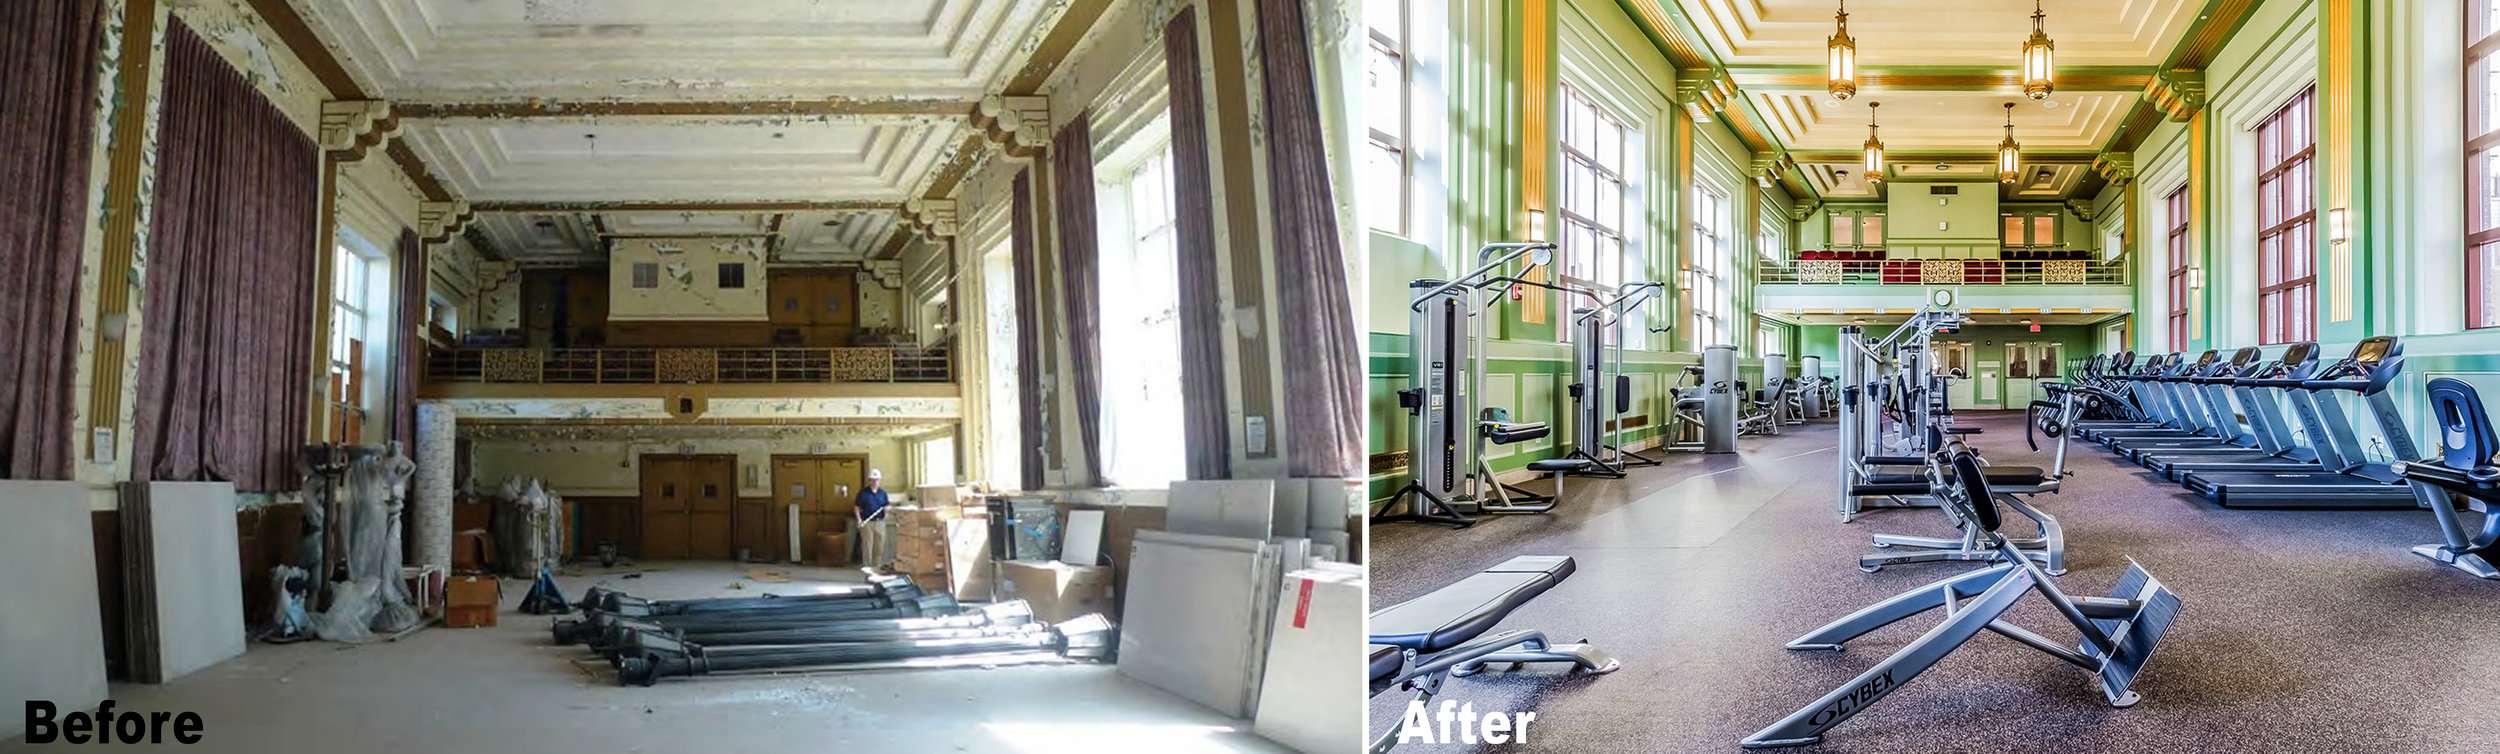 Auditorium Before and After.jpg